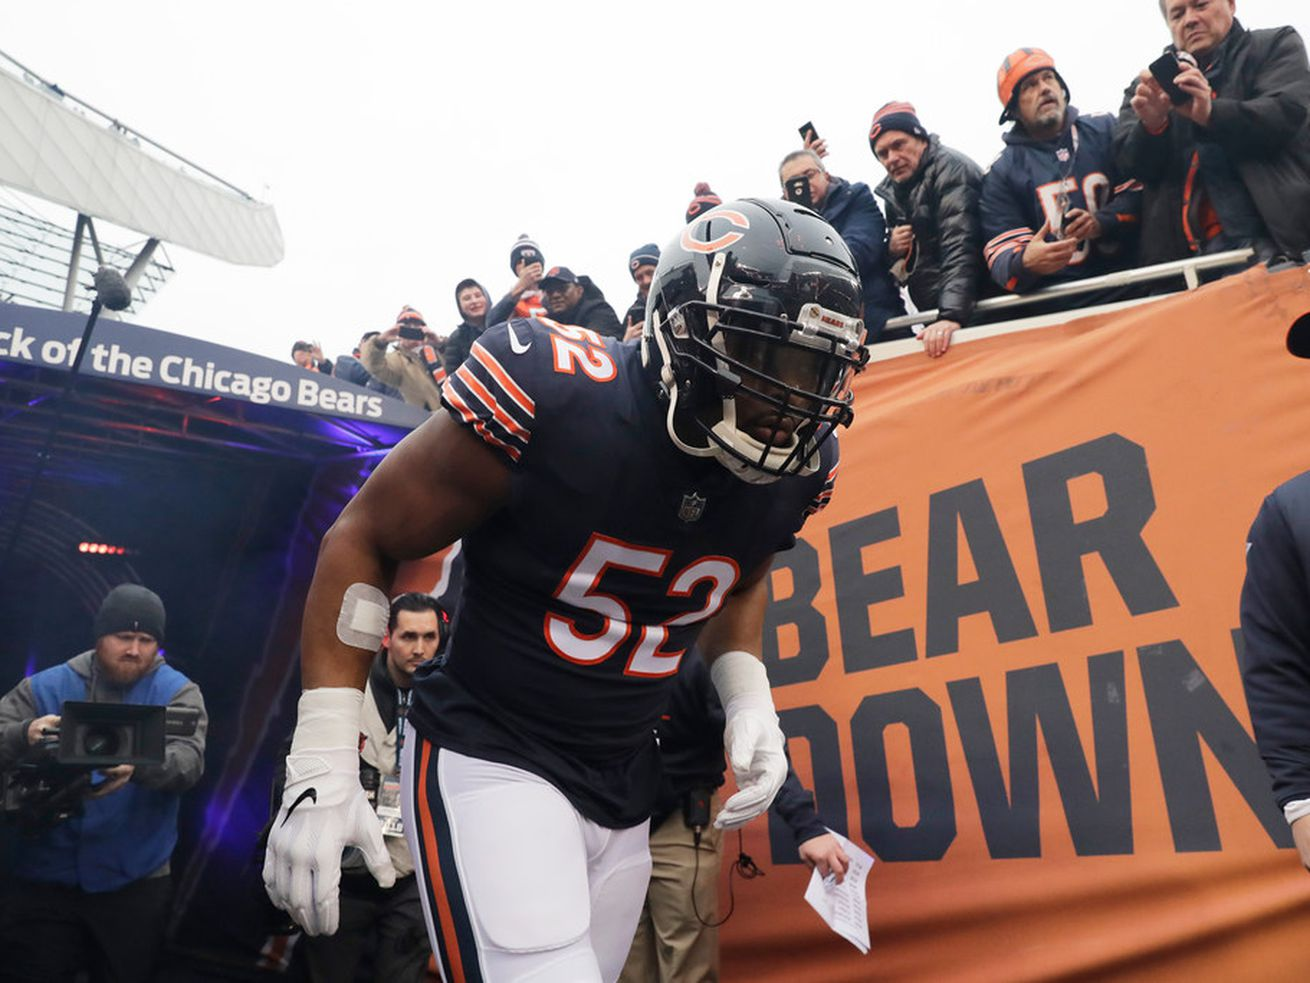 Khalil Mack earns perfect '99' rating to lead Bears in 'Madden NFL 20'